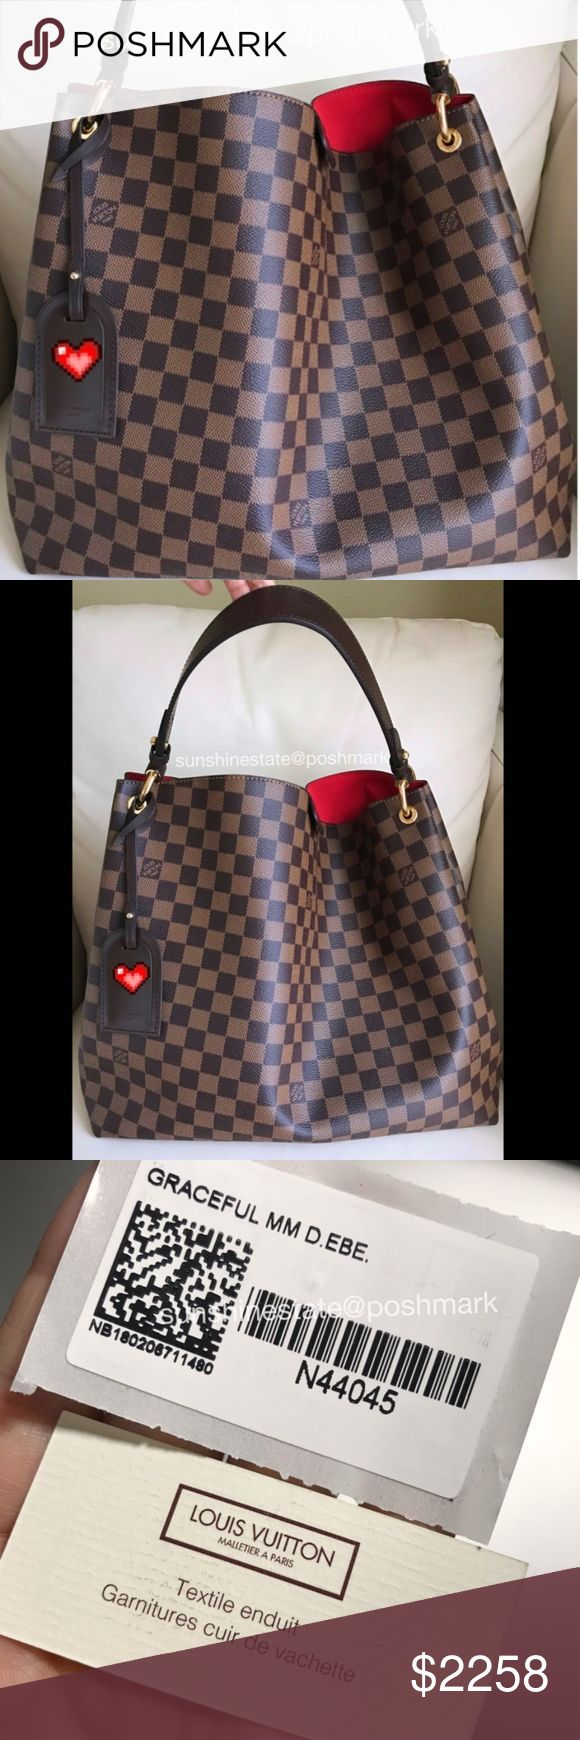 Louis Vuitton Graceful MM Damier Ebene Bag New! 100% ...